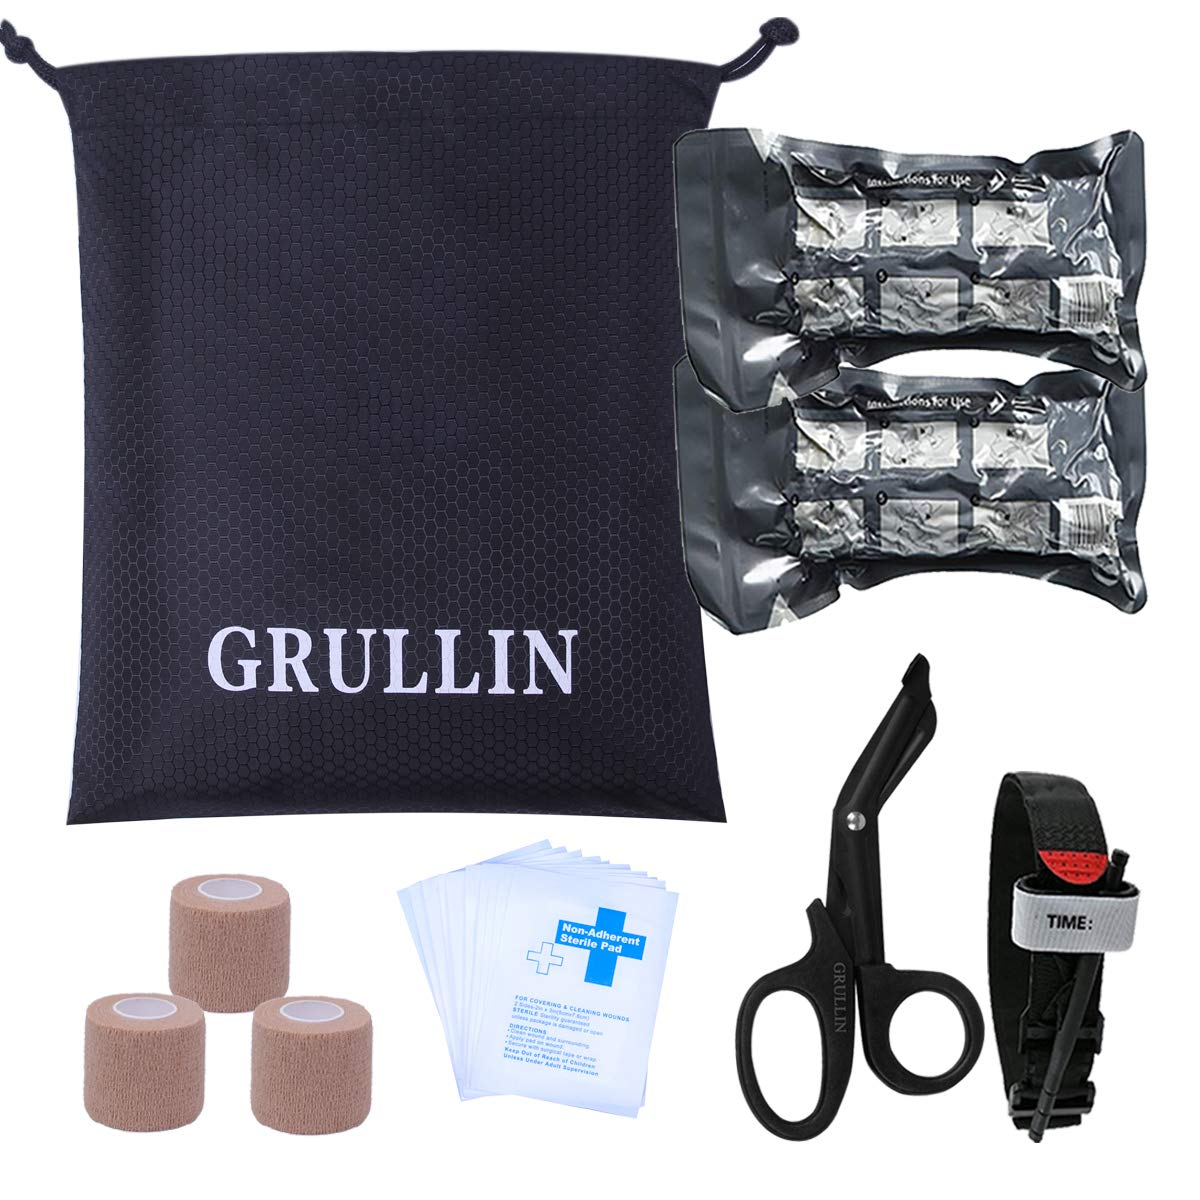 GRULLIN Tactical First aid Accessories Supplementary Kit-Tourniquet,Israeli Bandage,Self-Adhering Bandage,Medical EMT Scissors (Basic Kit) by GRULLIN